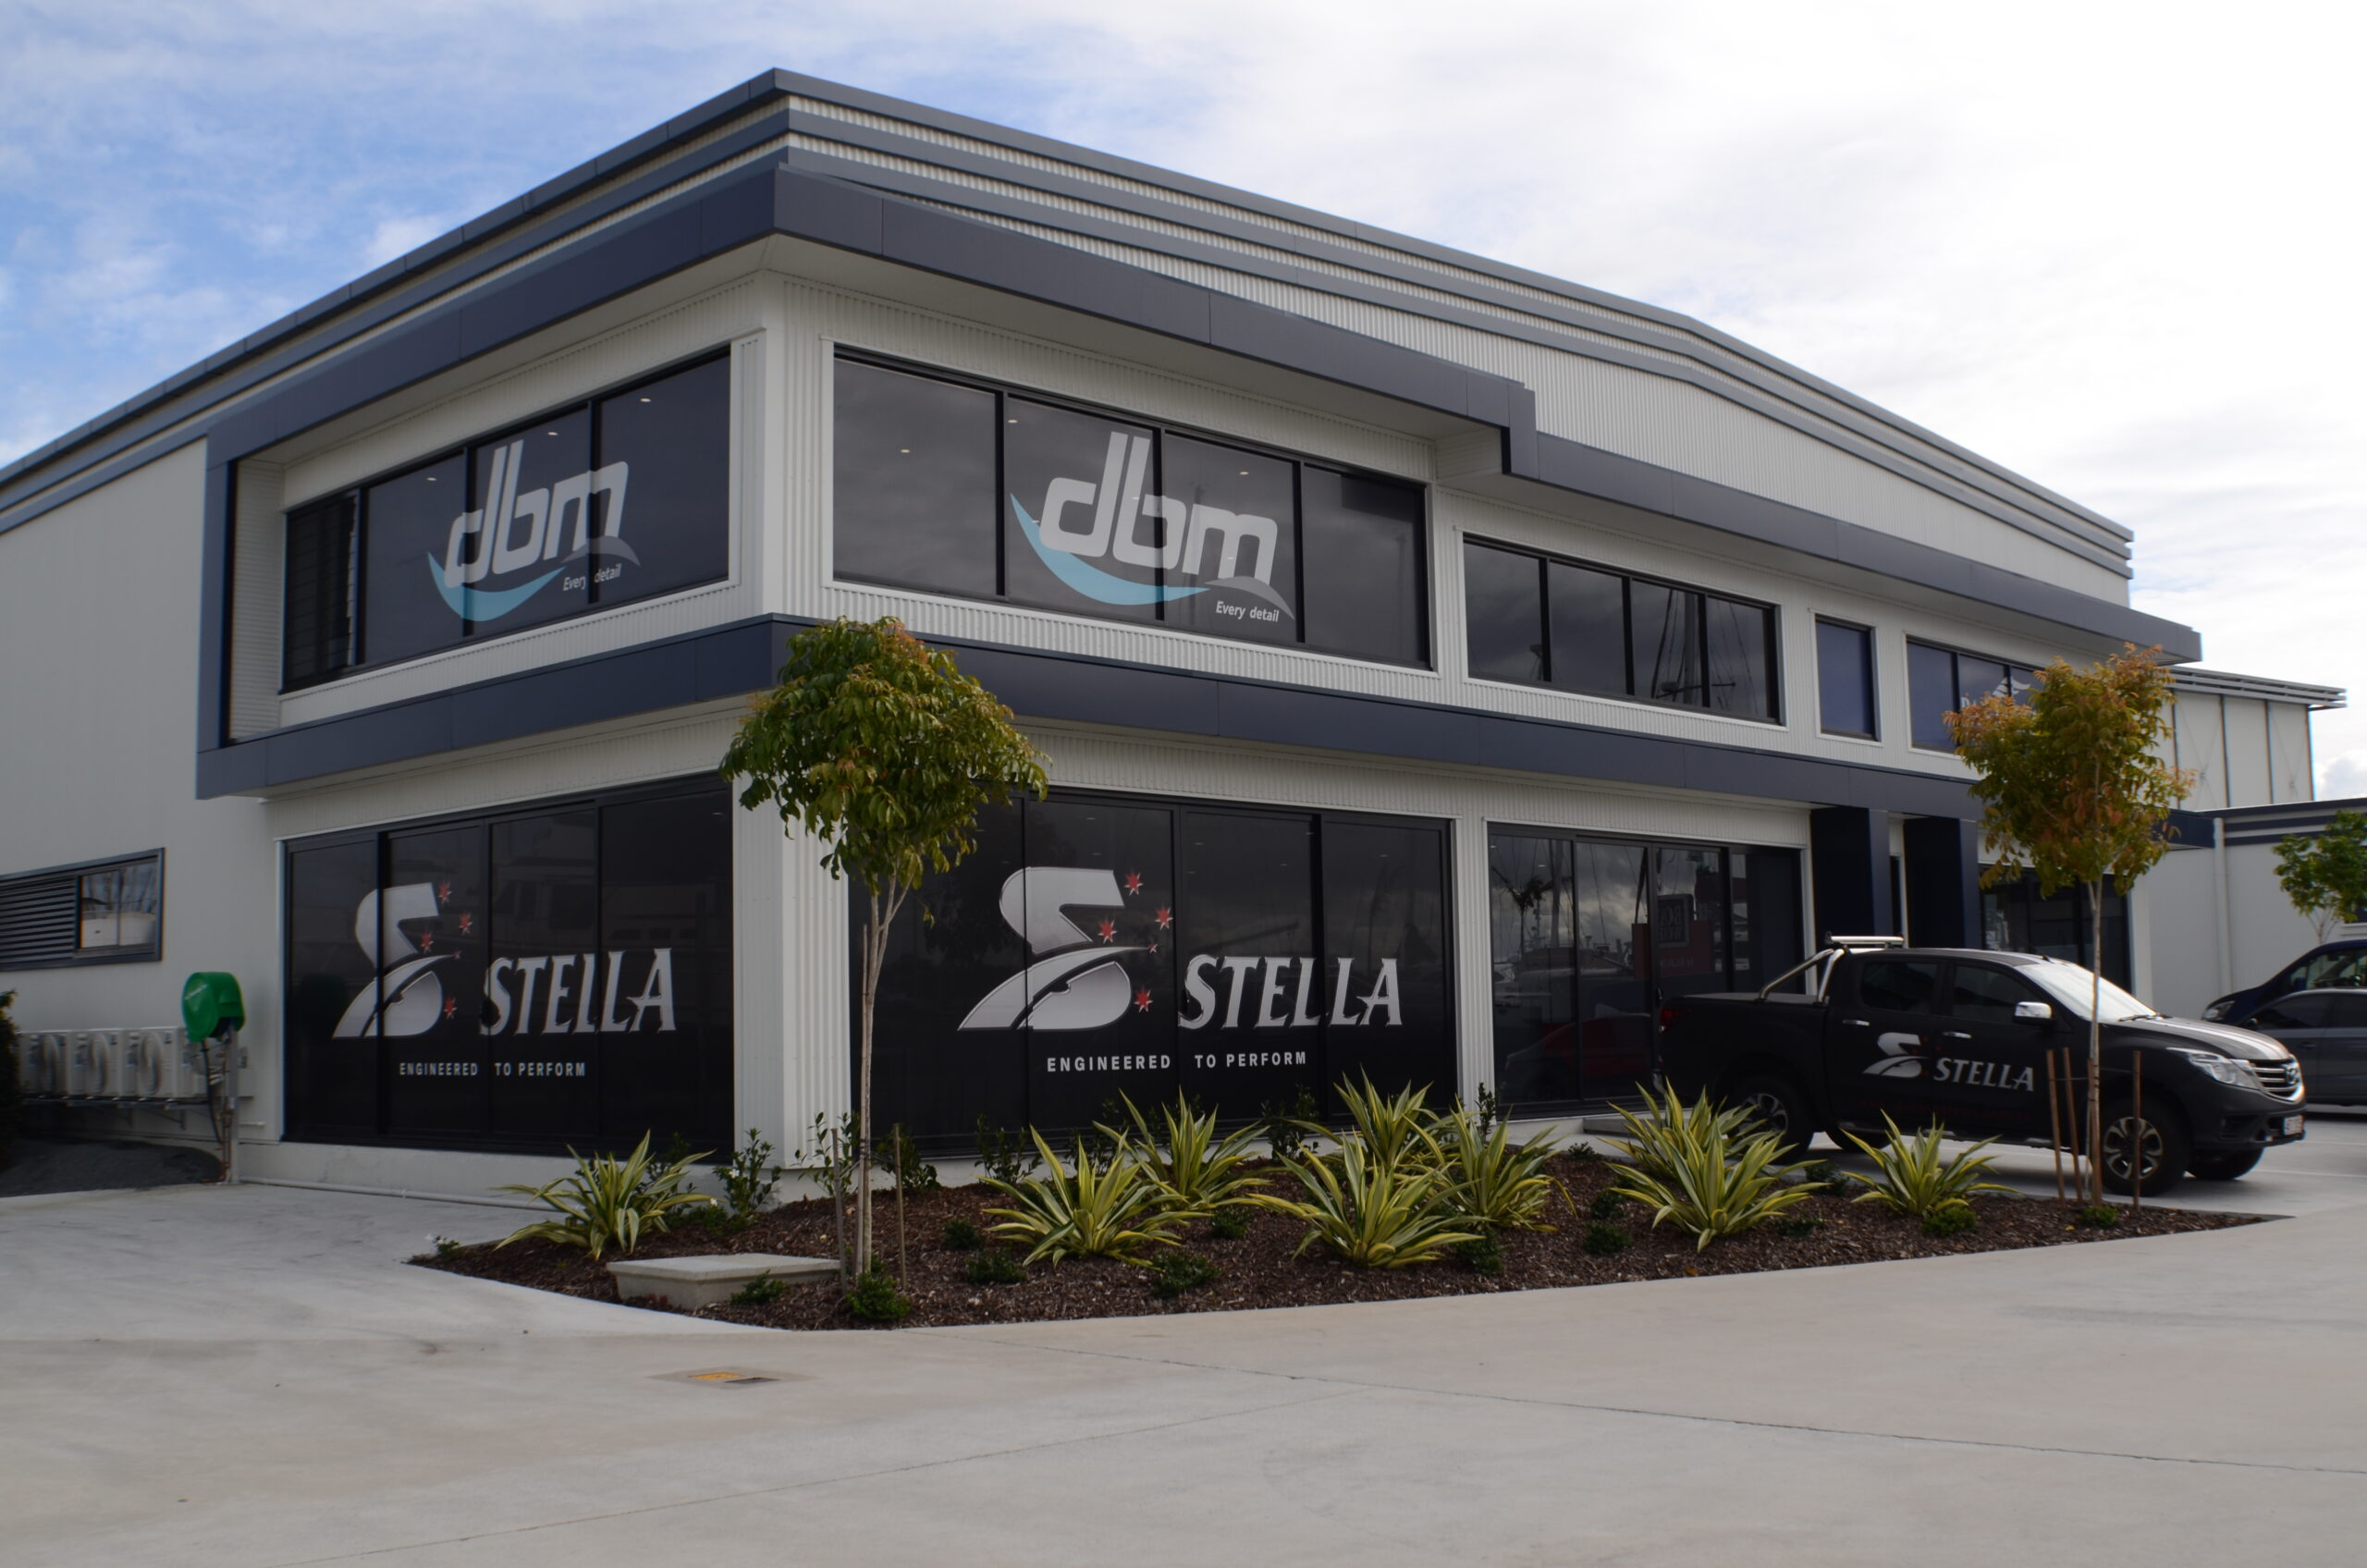 the new Stella building